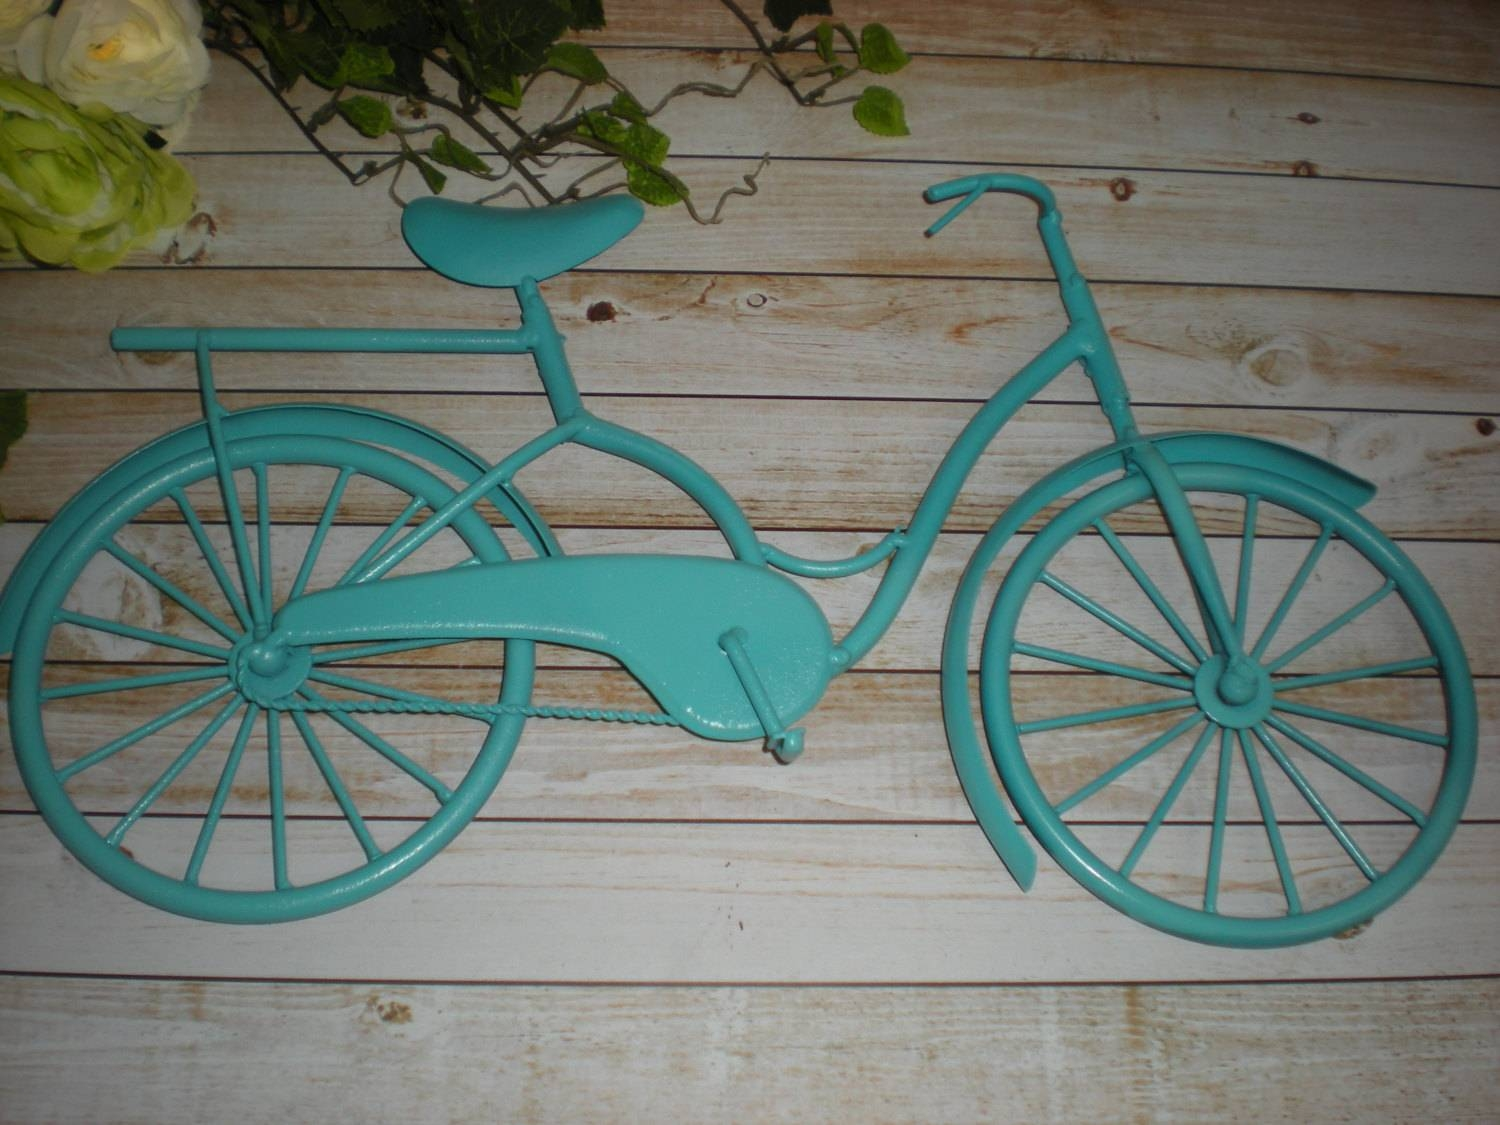 Winsome Metal Bicycle Wall Decor Bicycle Wall Art Wall Wrought Inside Most Recently Released Bicycle Metal Wall Art (View 12 of 20)